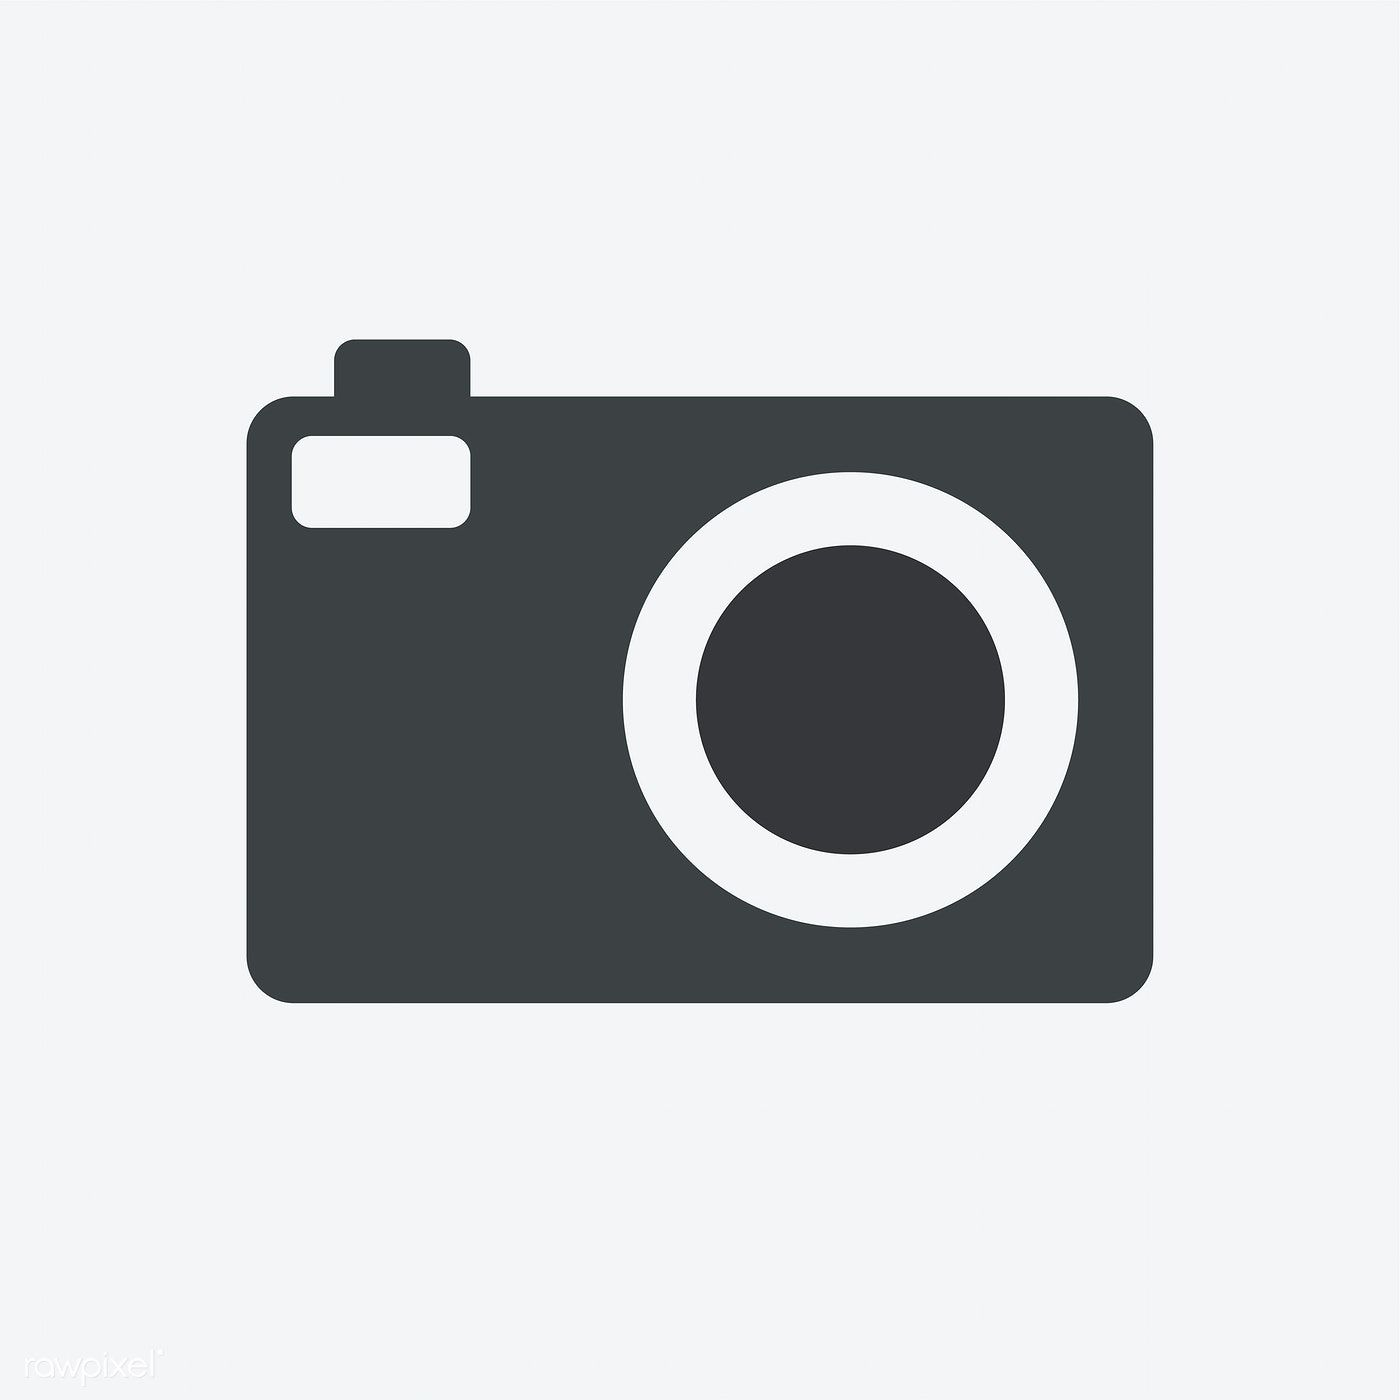 Vintage Camera Icon Isolated On Background Free Image By Rawpixel Com Camera Logos Design Camera Icon Vintage Camera